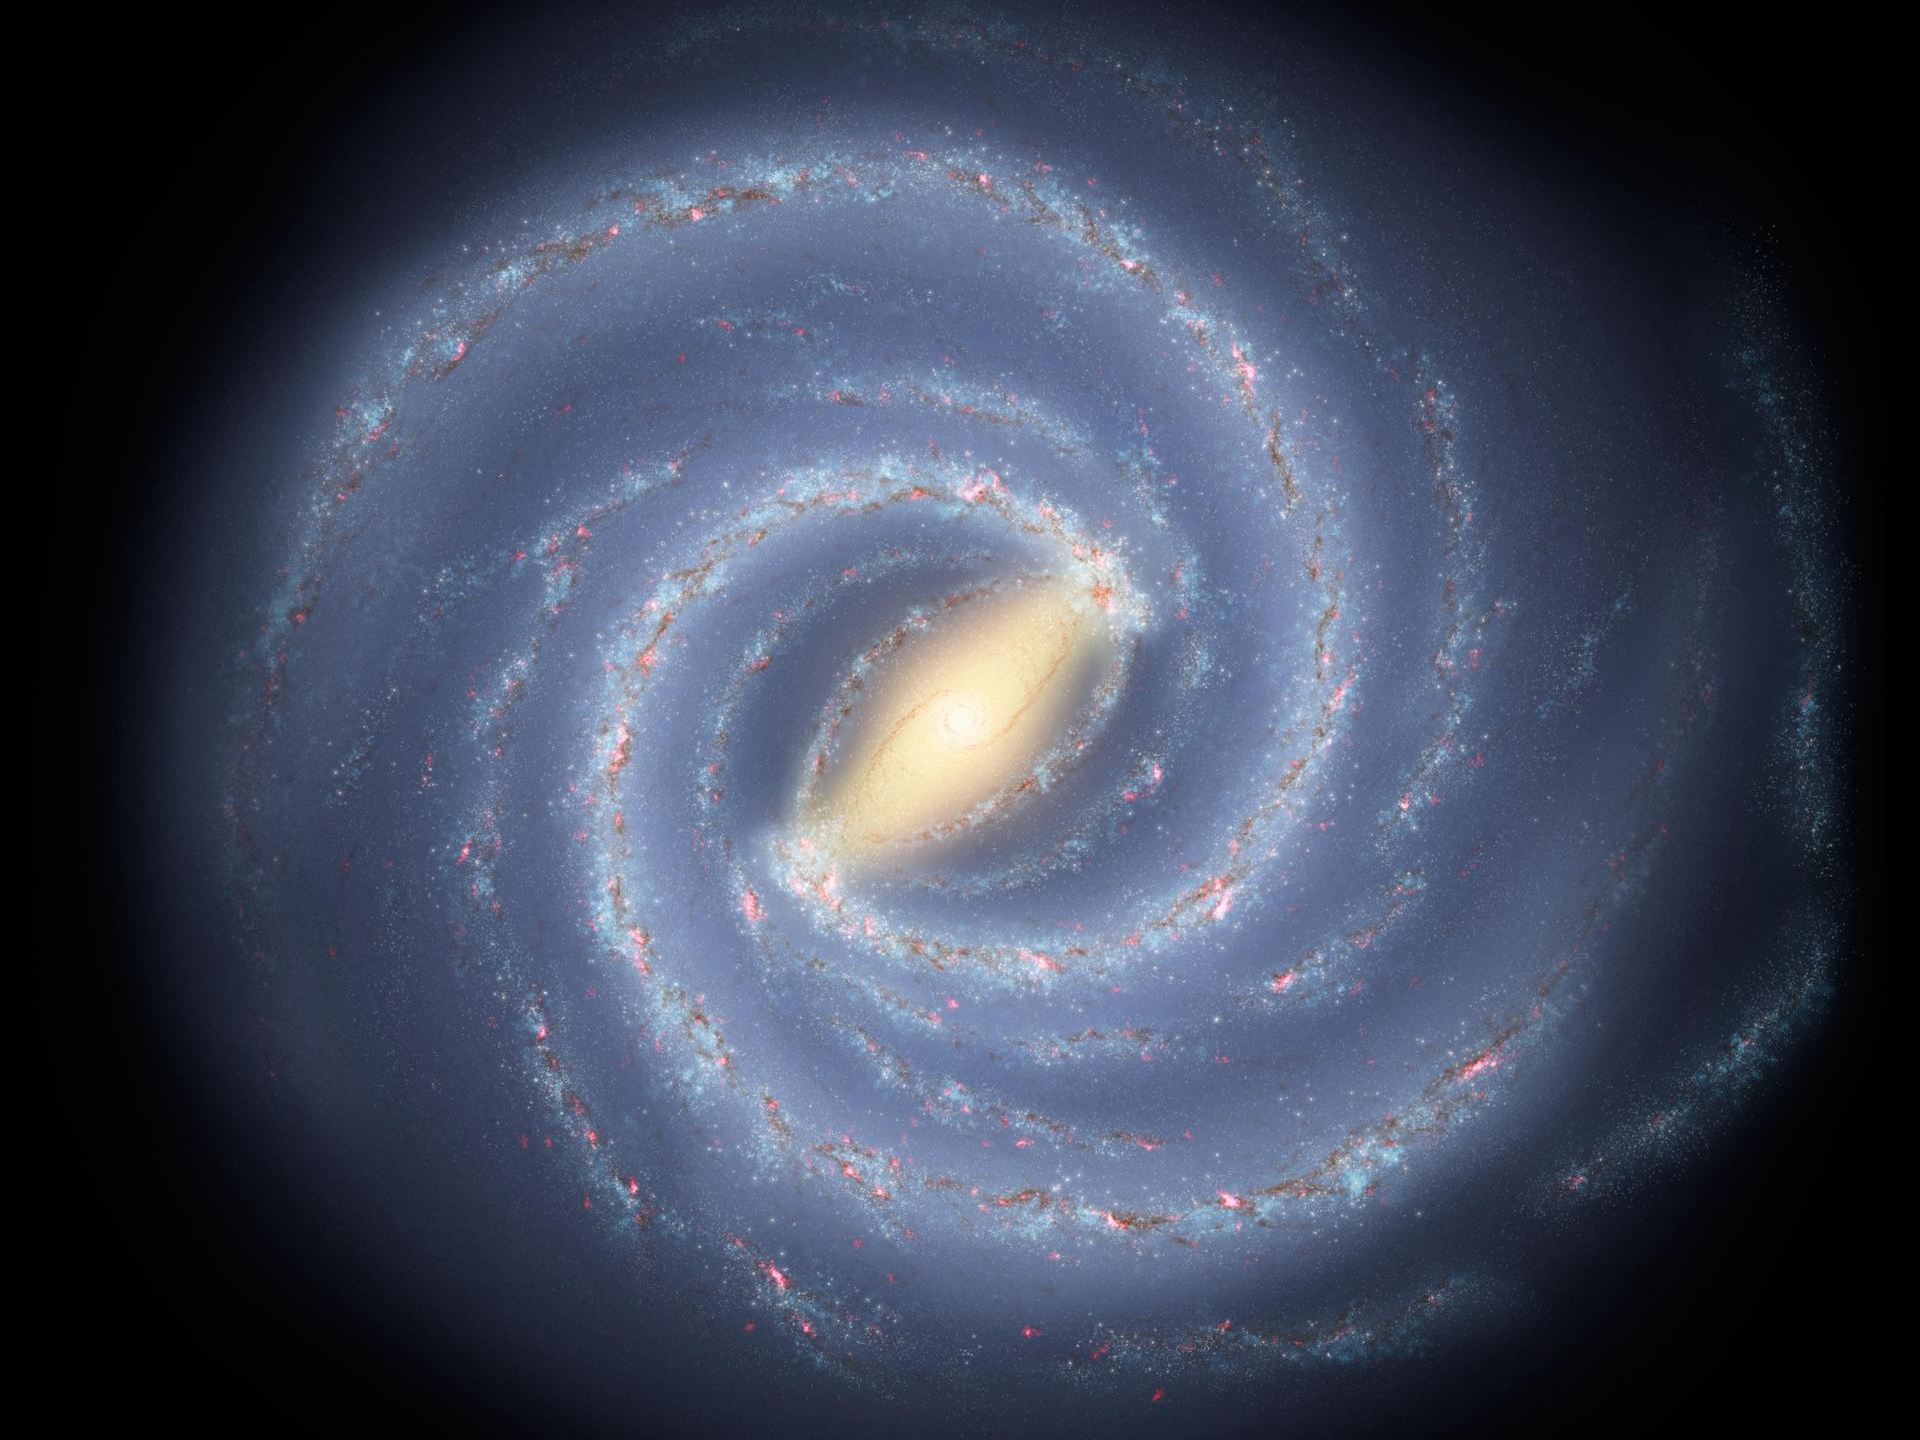 Concept of the Milky Way showing its central bar. (NASA/JPL-Caltech)